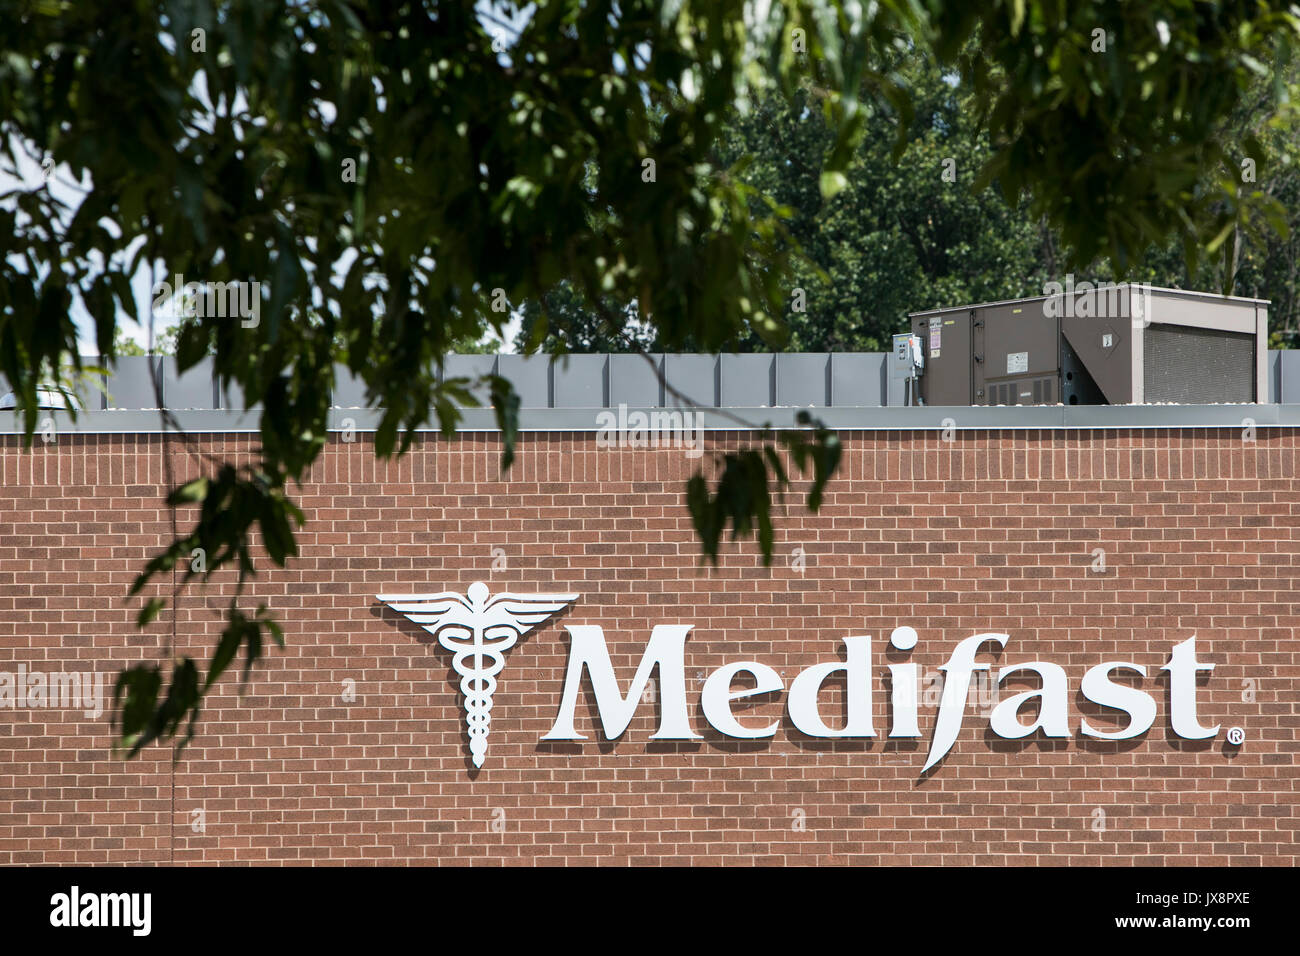 A logo sign outside of a facility occupied by Medifast, Inc., in Owings Mills, Maryland, on August 13, 2017. - Stock Image